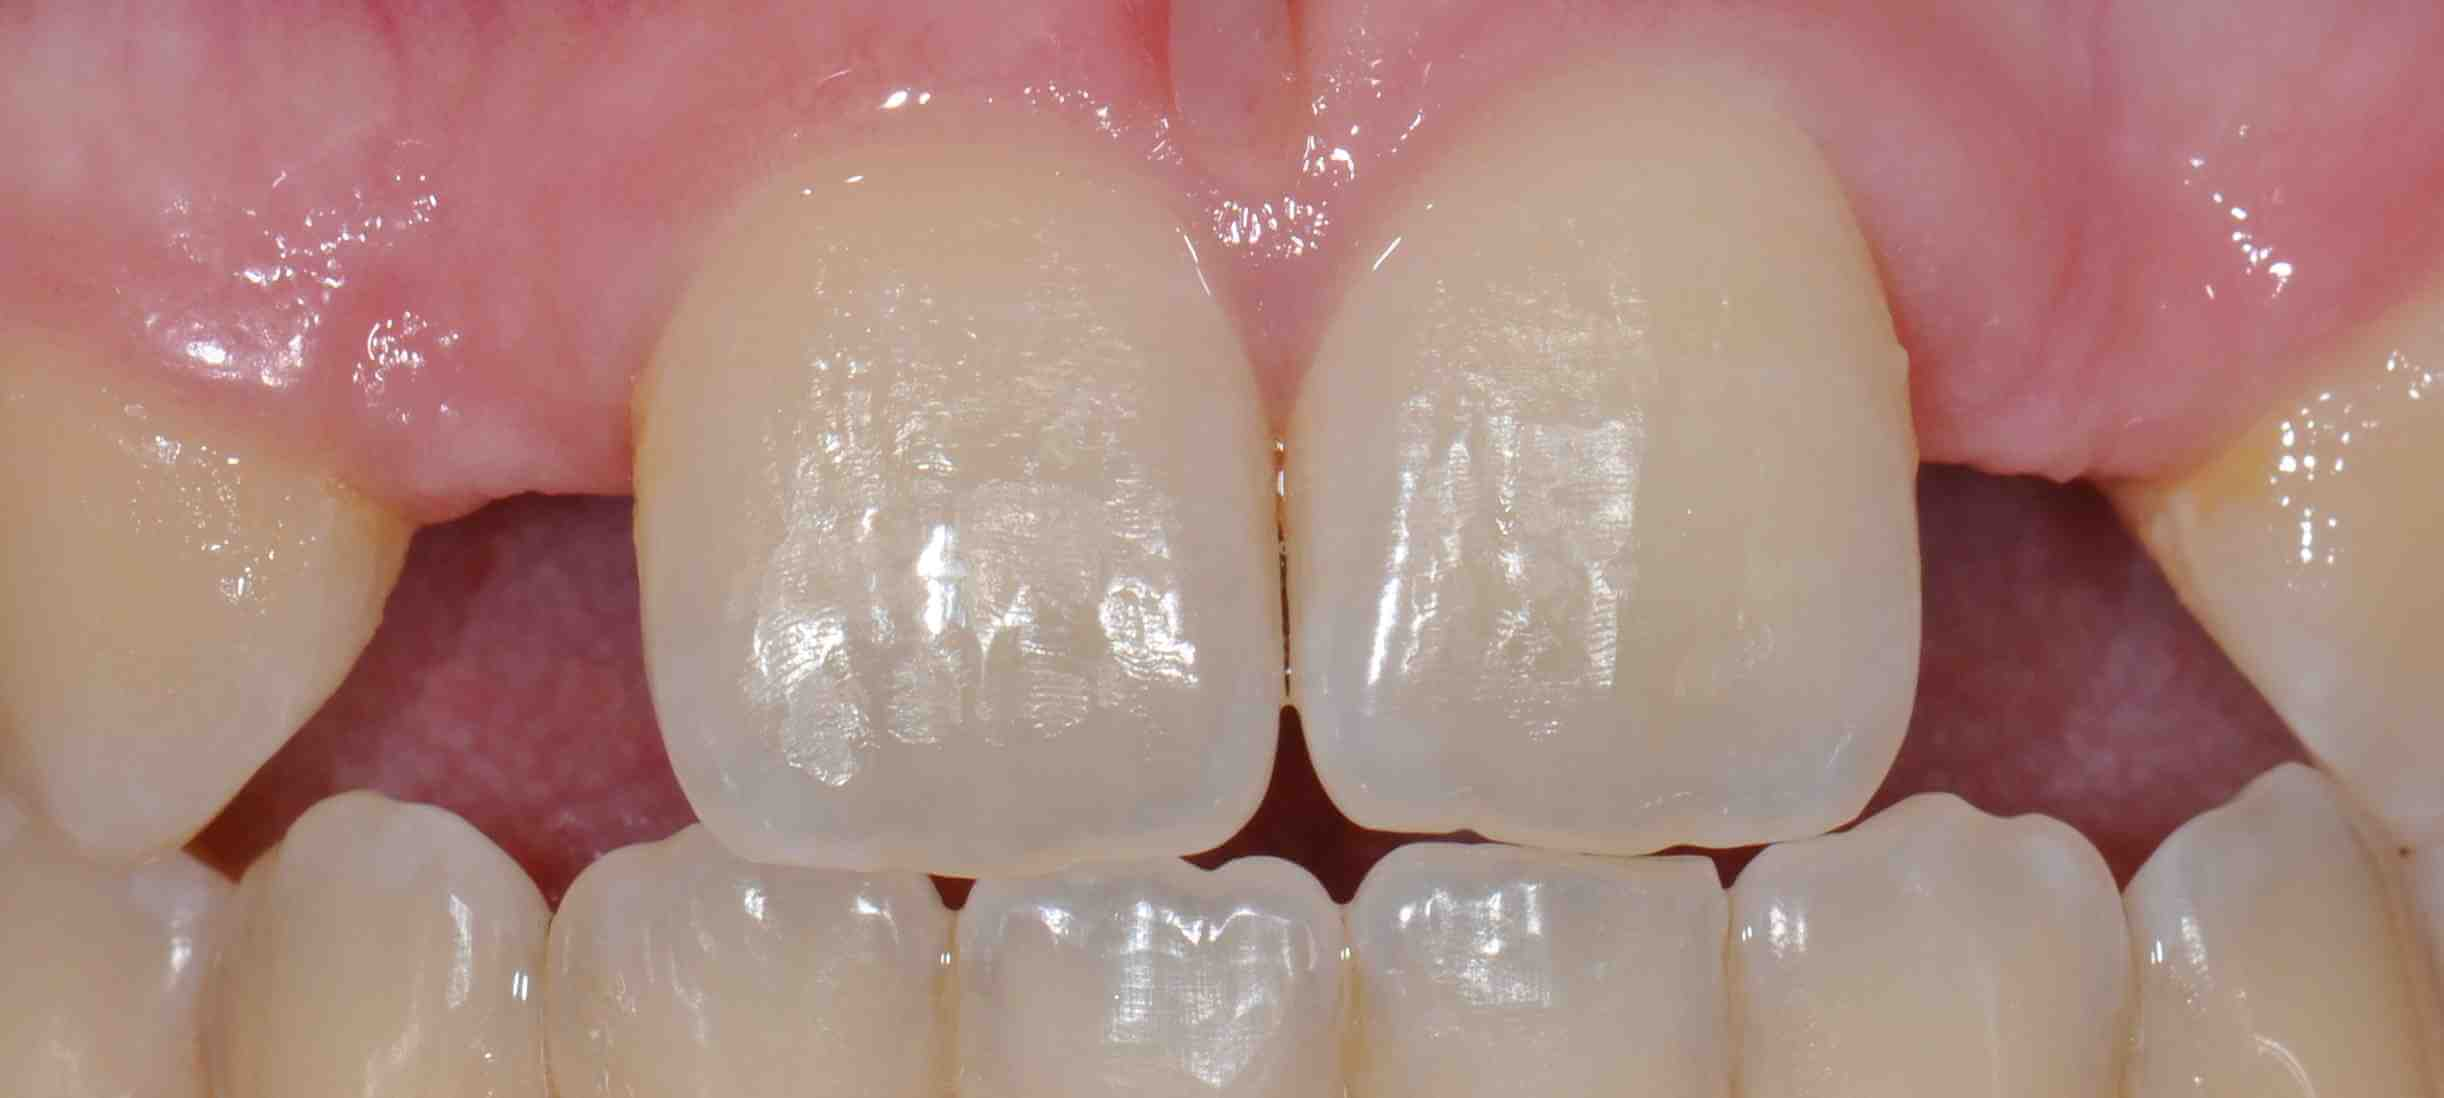 Resin Bonded Bridge for Lateral Incisor Replacement